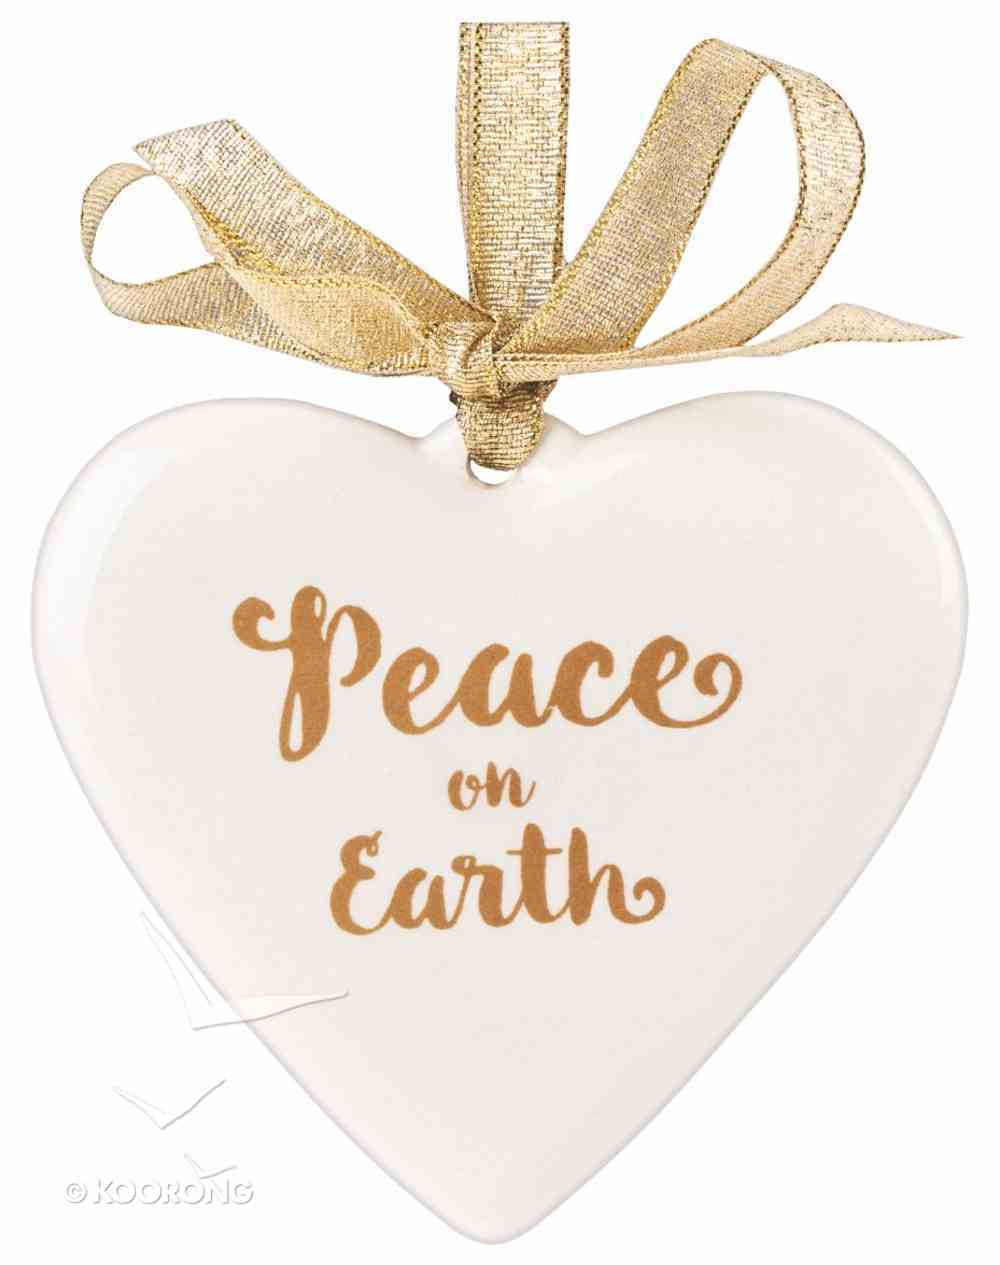 Porcelain Assorted Ornament: Peace on Earth, Heart (Gold/white) Homeware